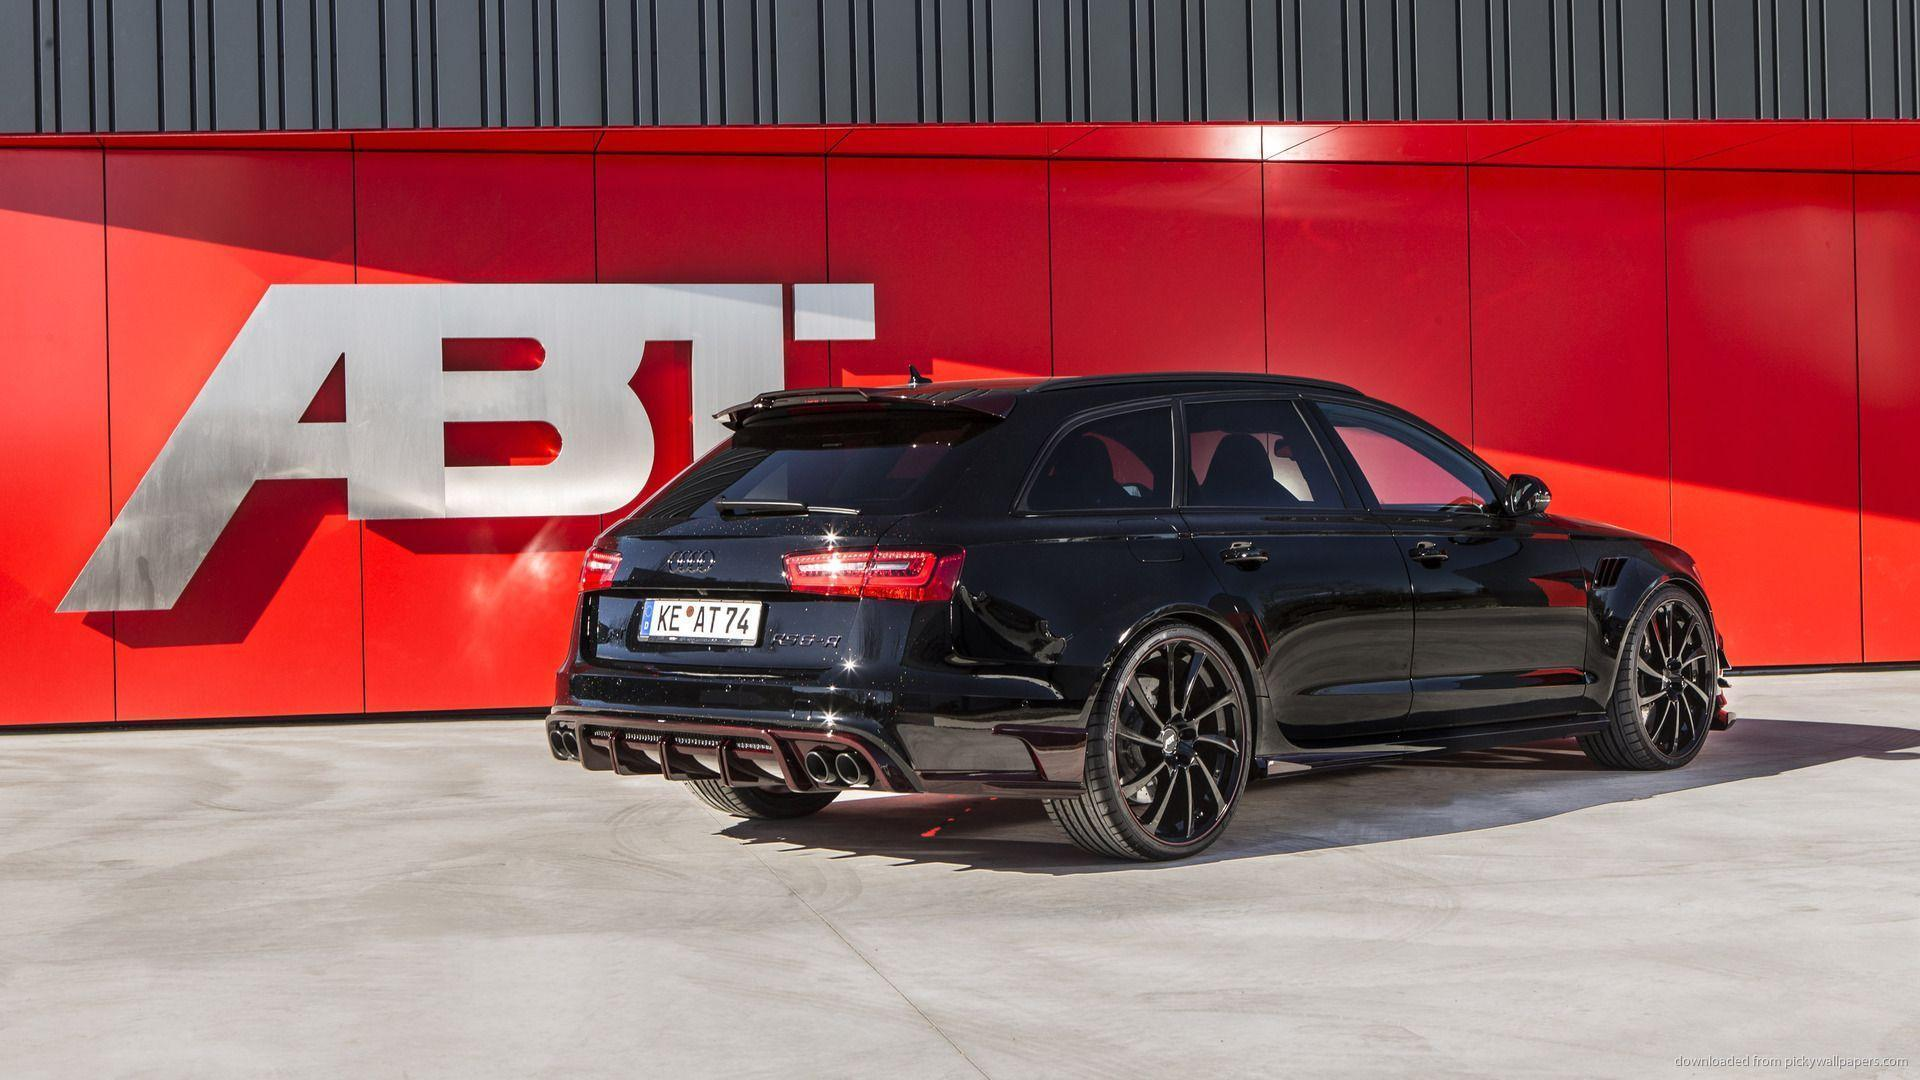 Top Abt Audi Rs6 Wallpaper Wallpapers - illinois-liver